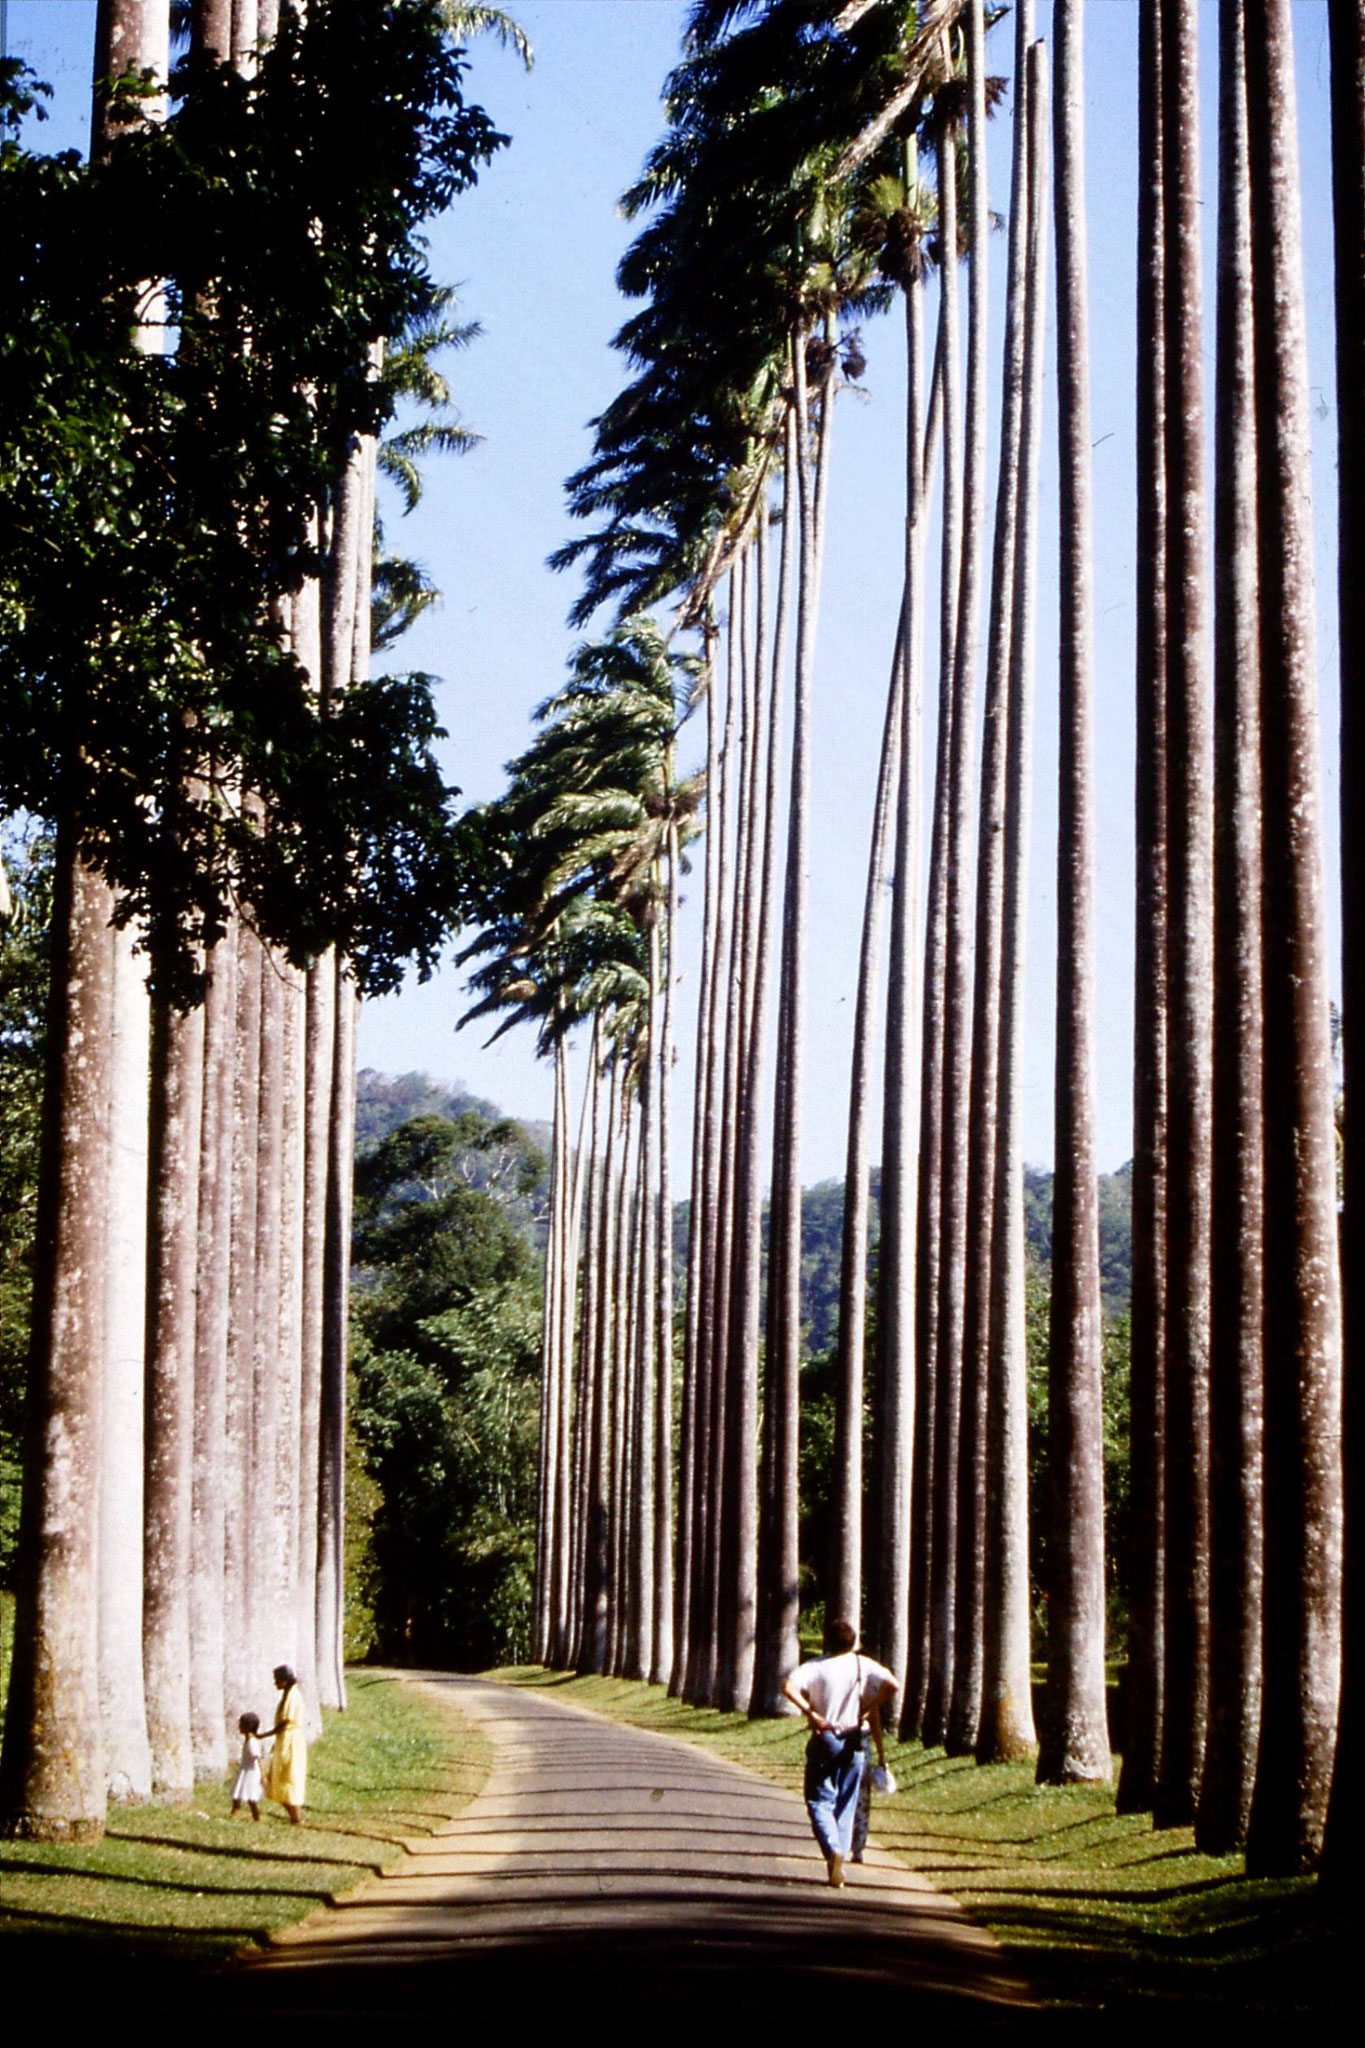 5/2/1990: 16: Kandy Botanical Gardens cabbage palm avenue